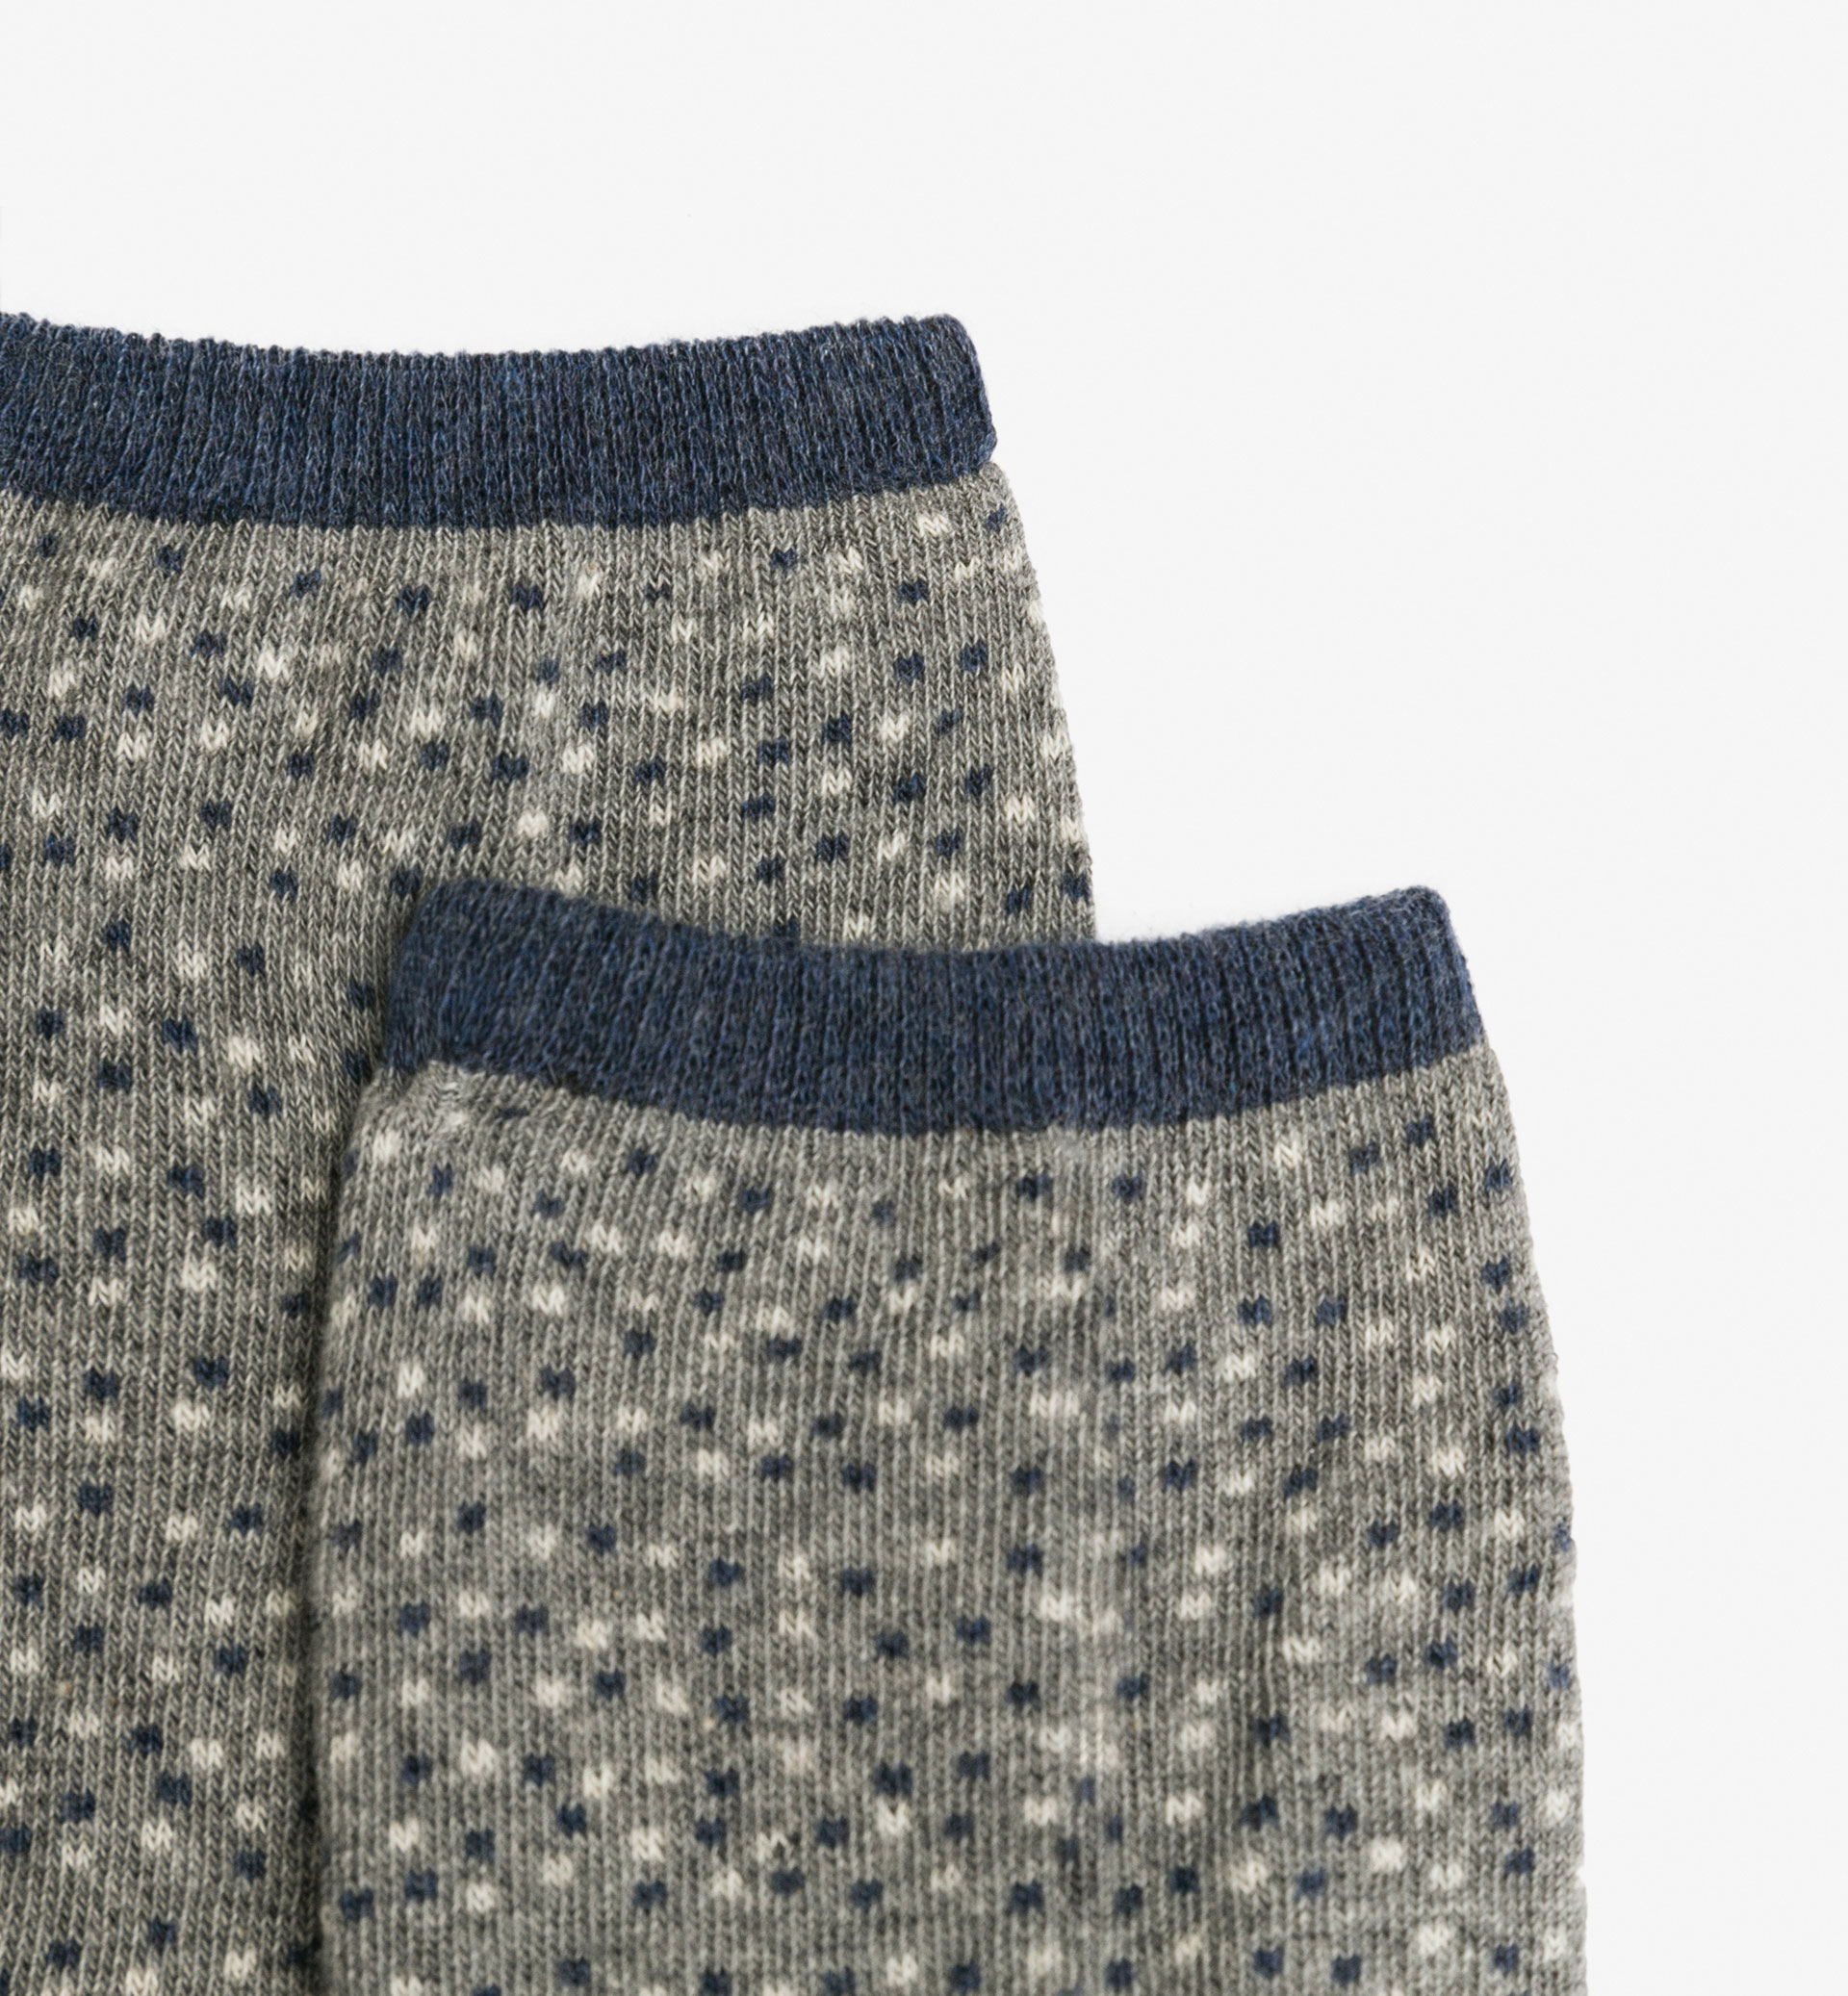 PACK OF POLKA DOT/DENIM SOCKS